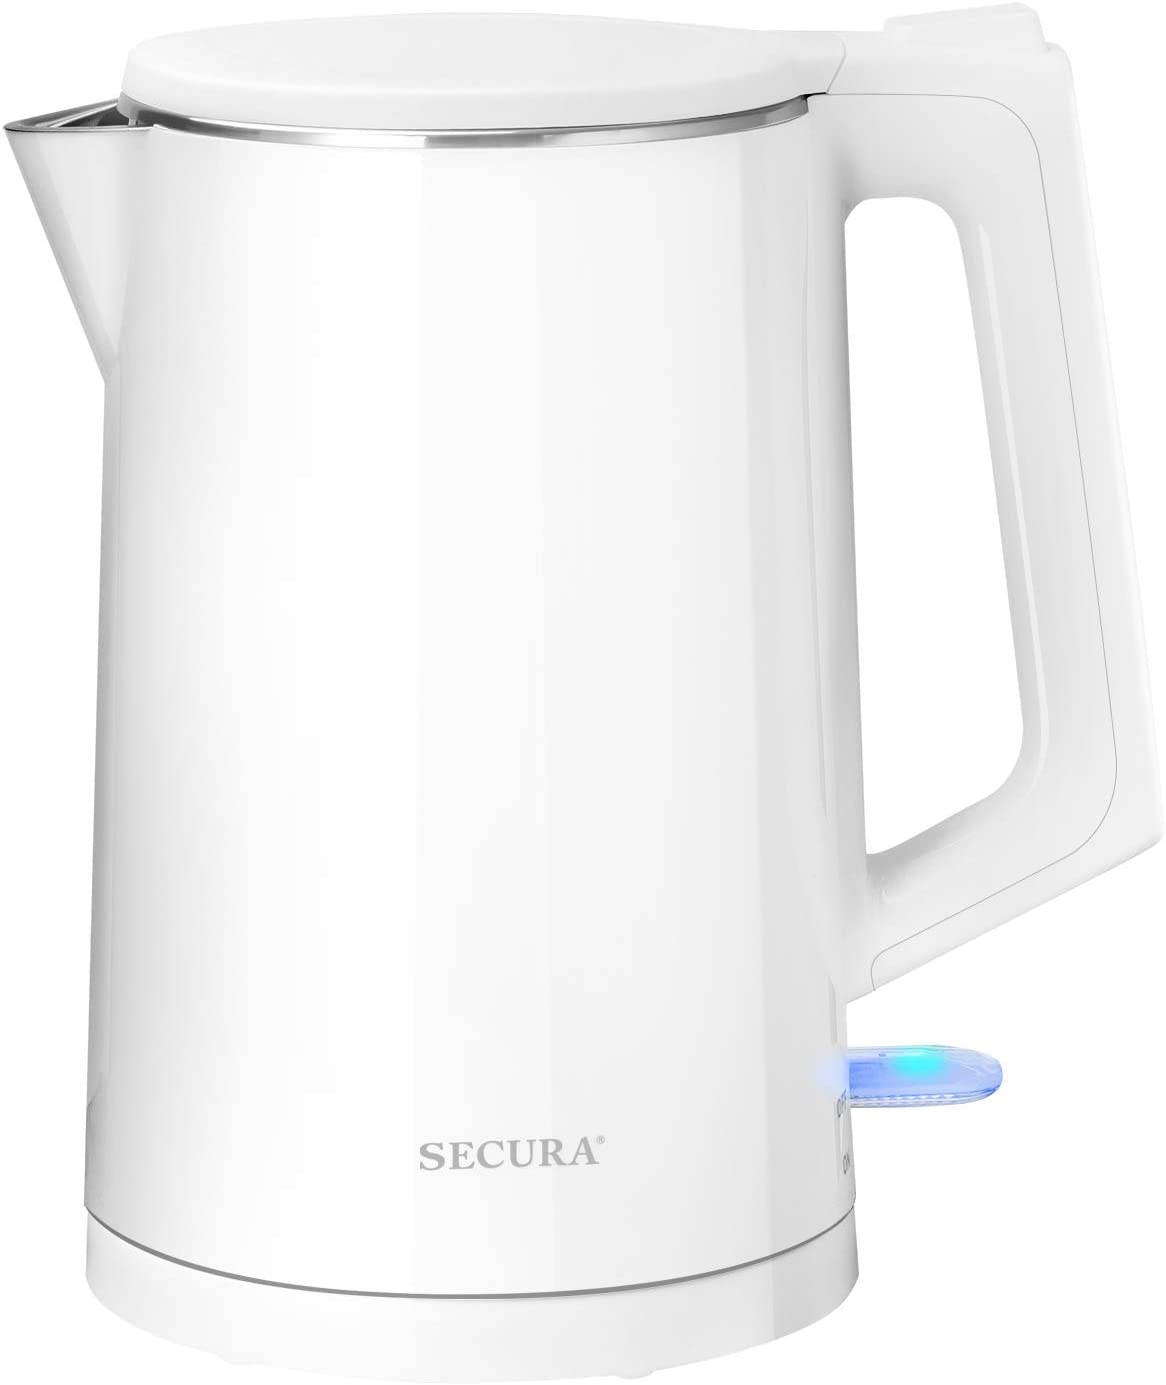 Secura SWK-1511 The Original Stainless Steel Double Wall Electric Water Kettle 1.6 Quart (White)